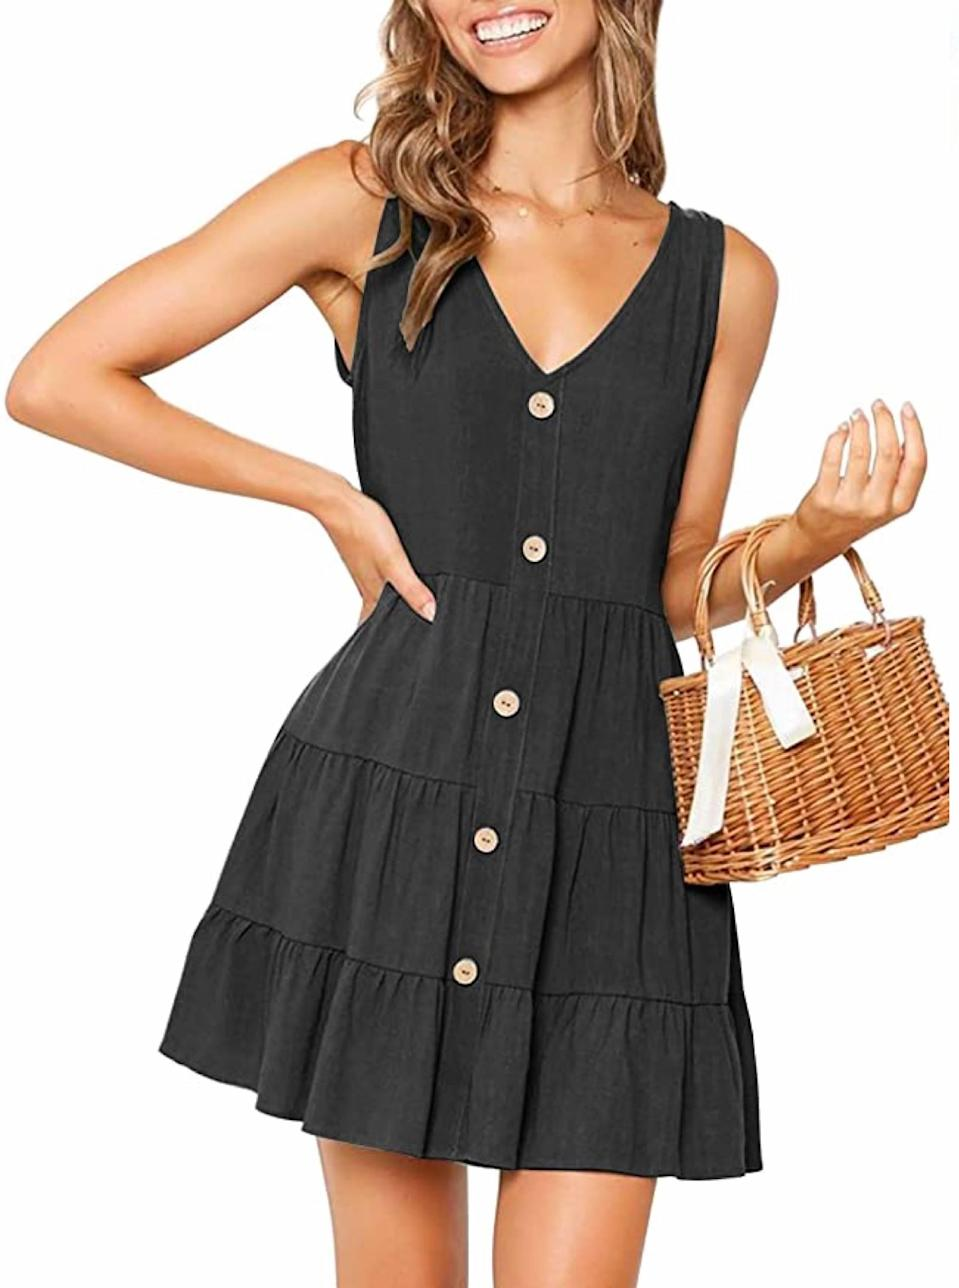 """A playful pick for anyone who sticks to all black everything year-round. $22, Amazon. <a href=""""https://www.amazon.com/MITILLY-Womens-Summer-Sleeveless-Button/dp/B07PQW4X25"""" rel=""""nofollow noopener"""" target=""""_blank"""" data-ylk=""""slk:Get it now!"""" class=""""link rapid-noclick-resp"""">Get it now!</a>"""